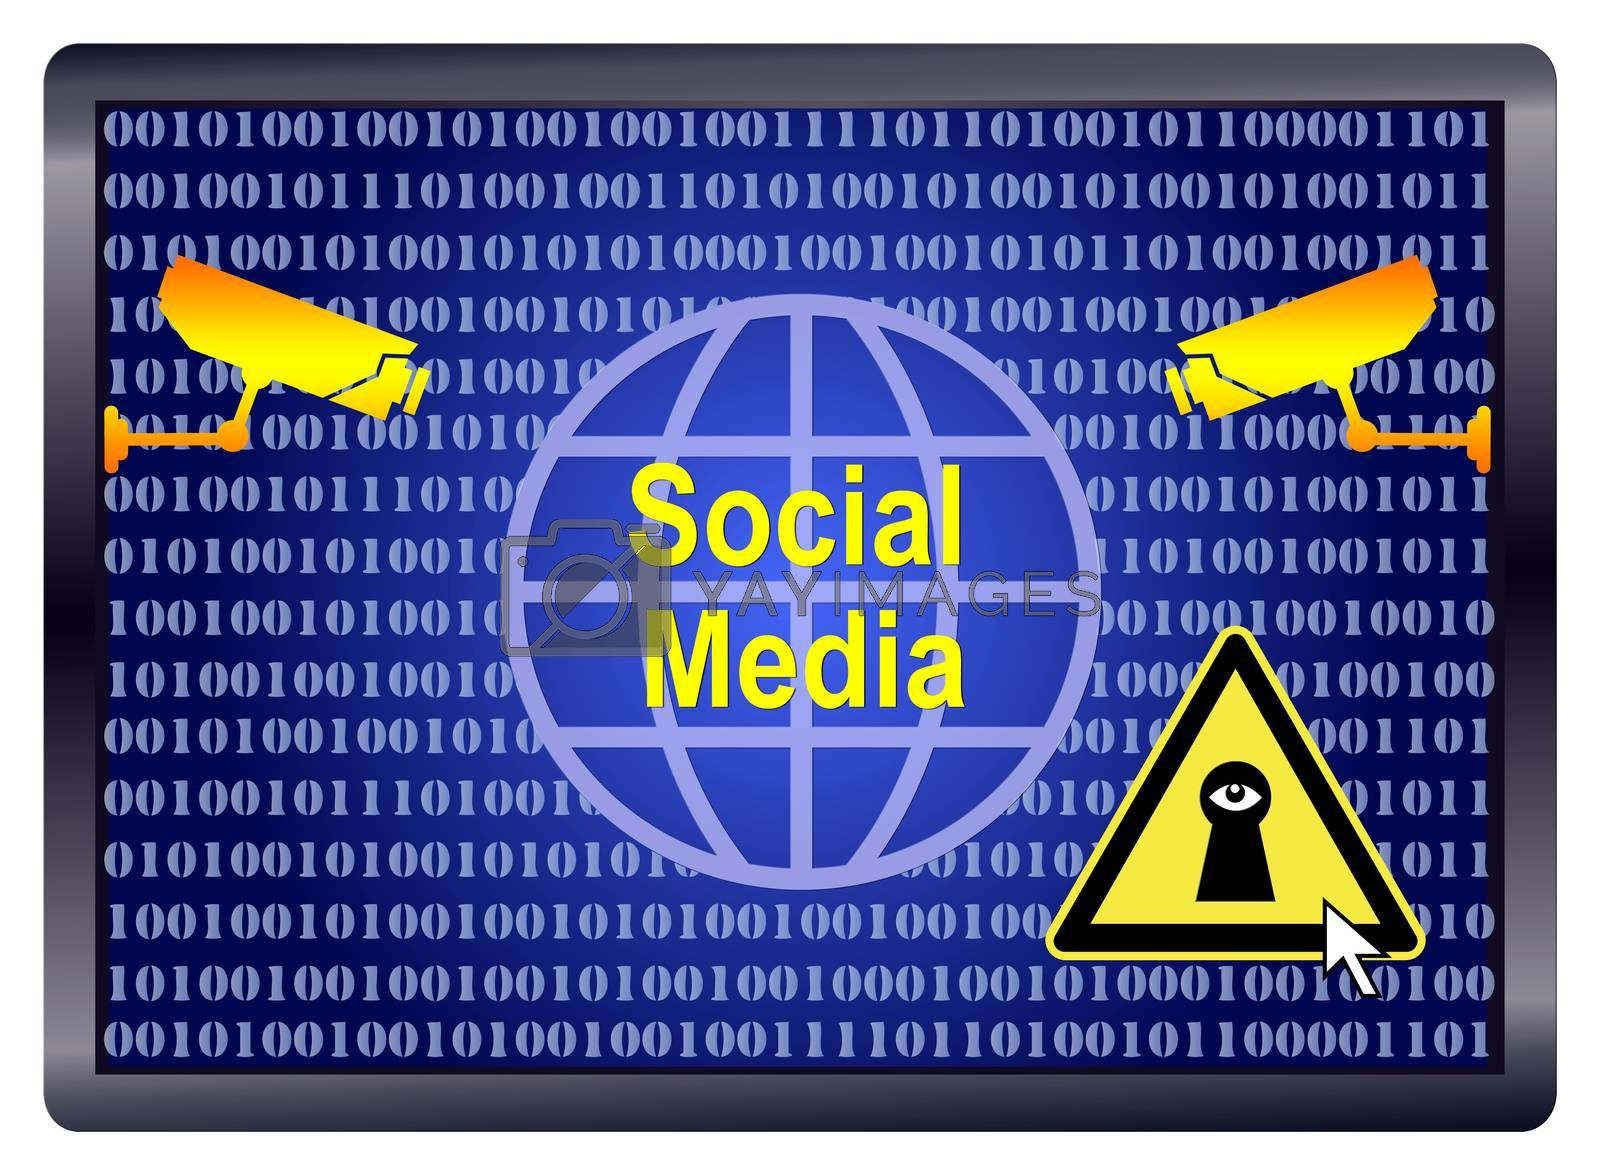 Spies in Social Media. Data traffic within Social Networks reveal many informations which can be used or misused in many different ways